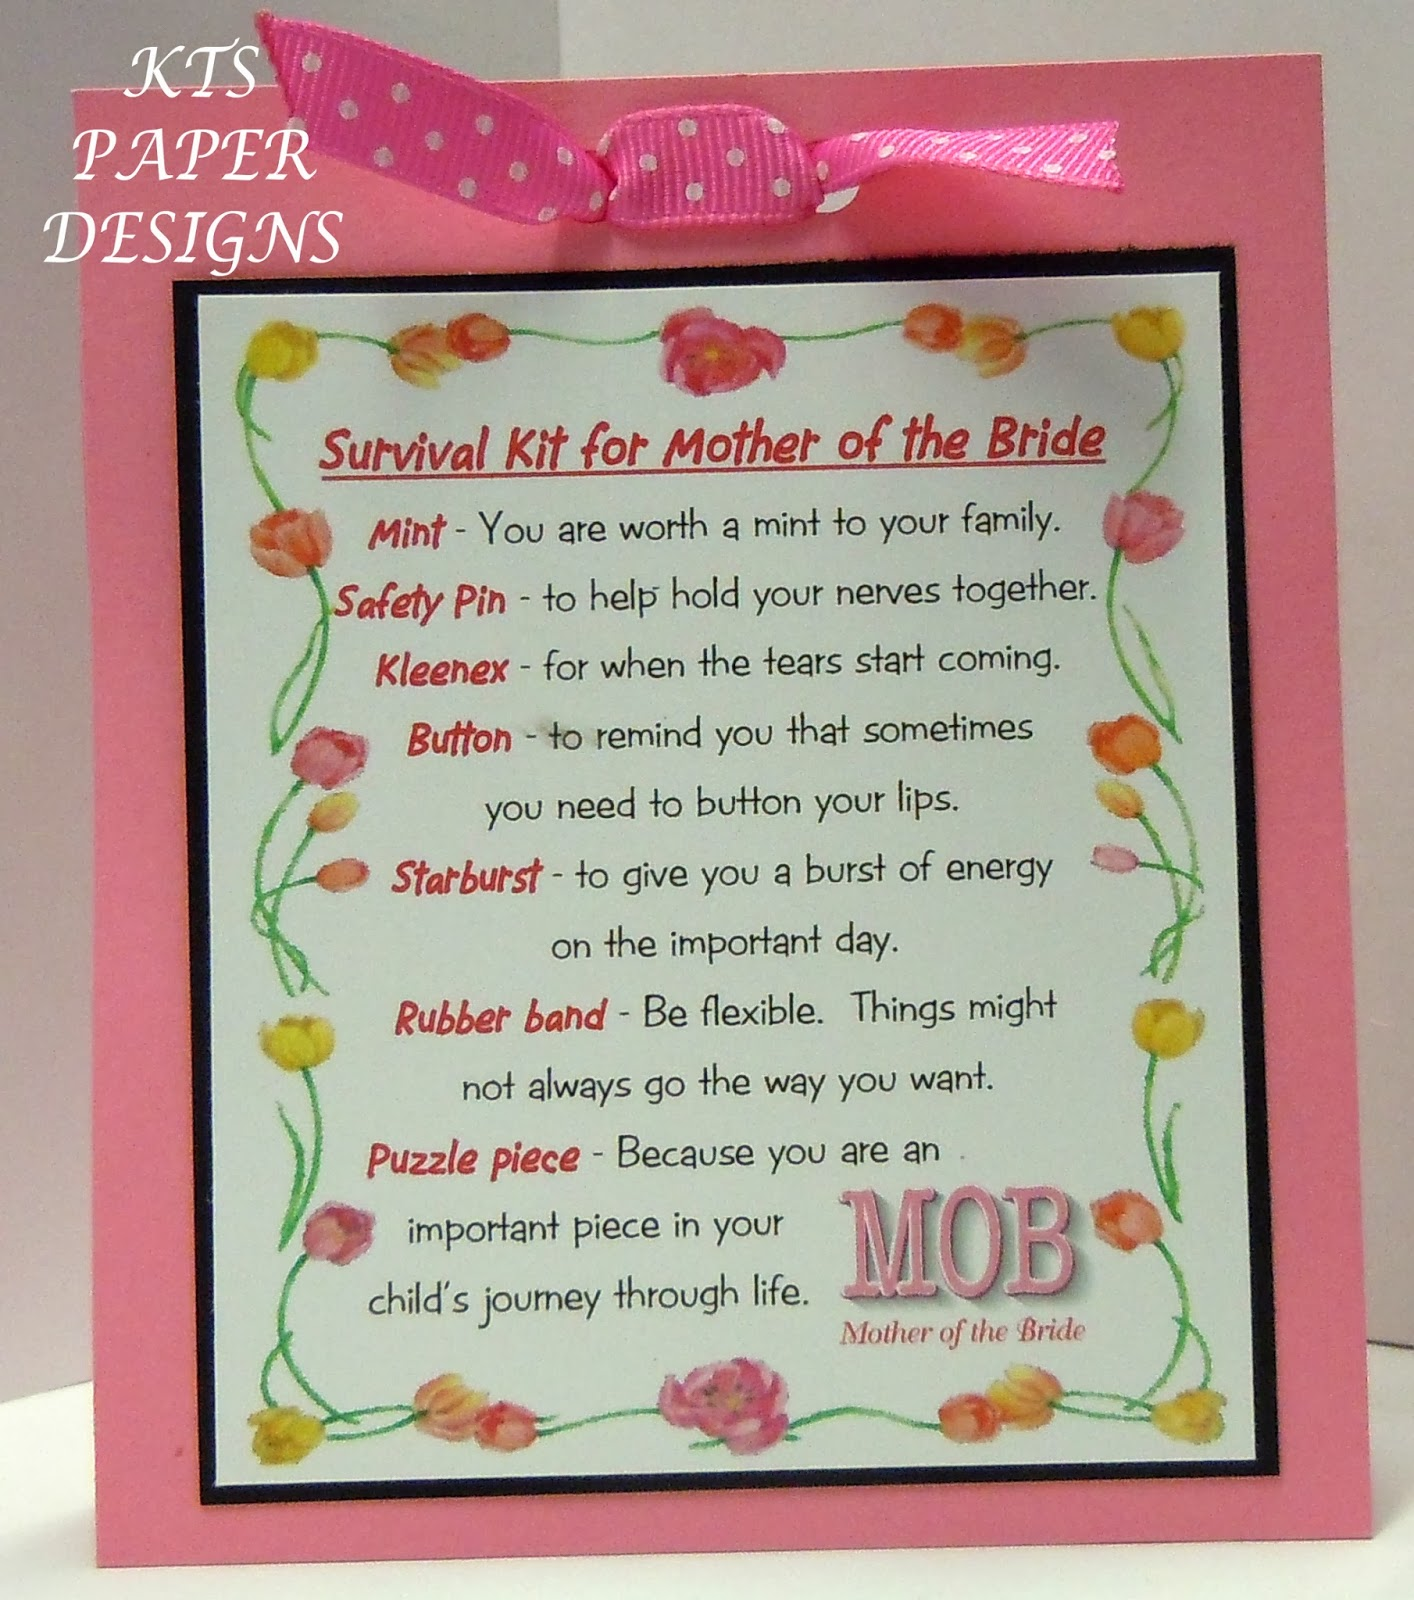 Kts paper designs mother and grandmother of the bride survivor kits mother and grandmother of the bride survivor kits m4hsunfo